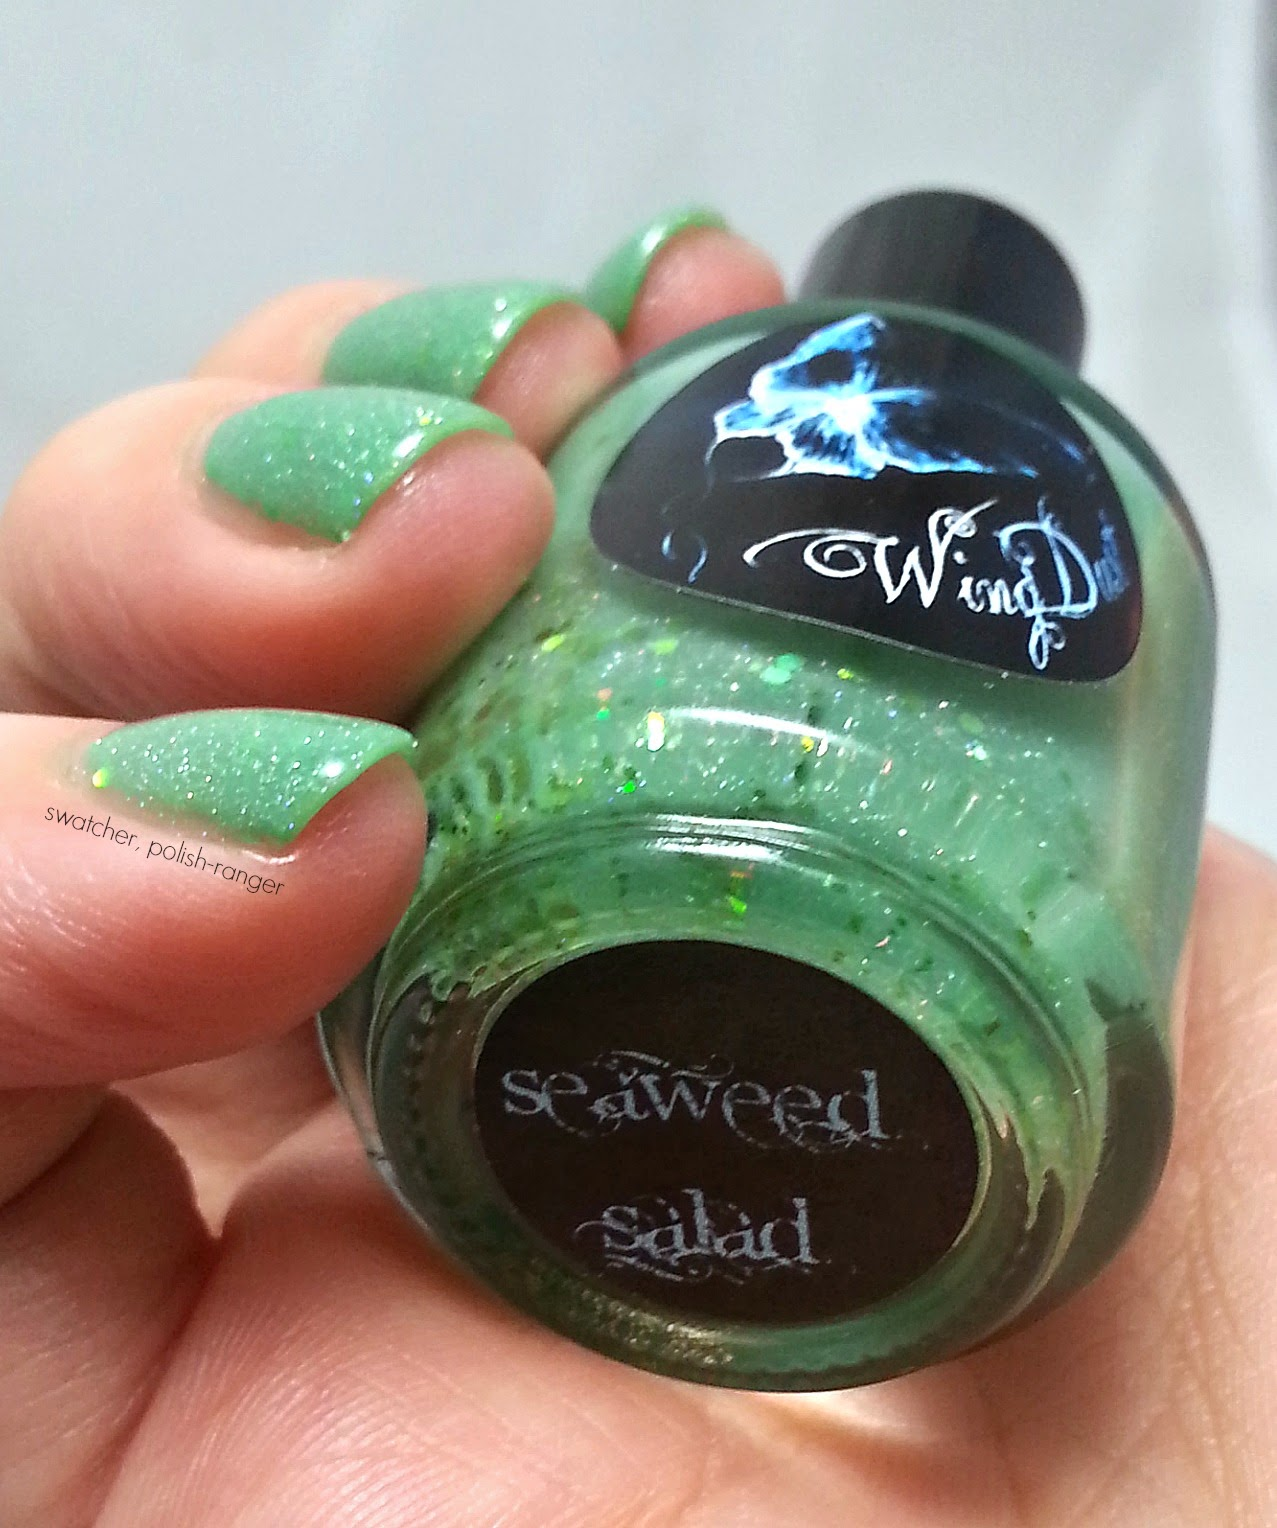 Wingdust Collections Seaweed Salad swatch